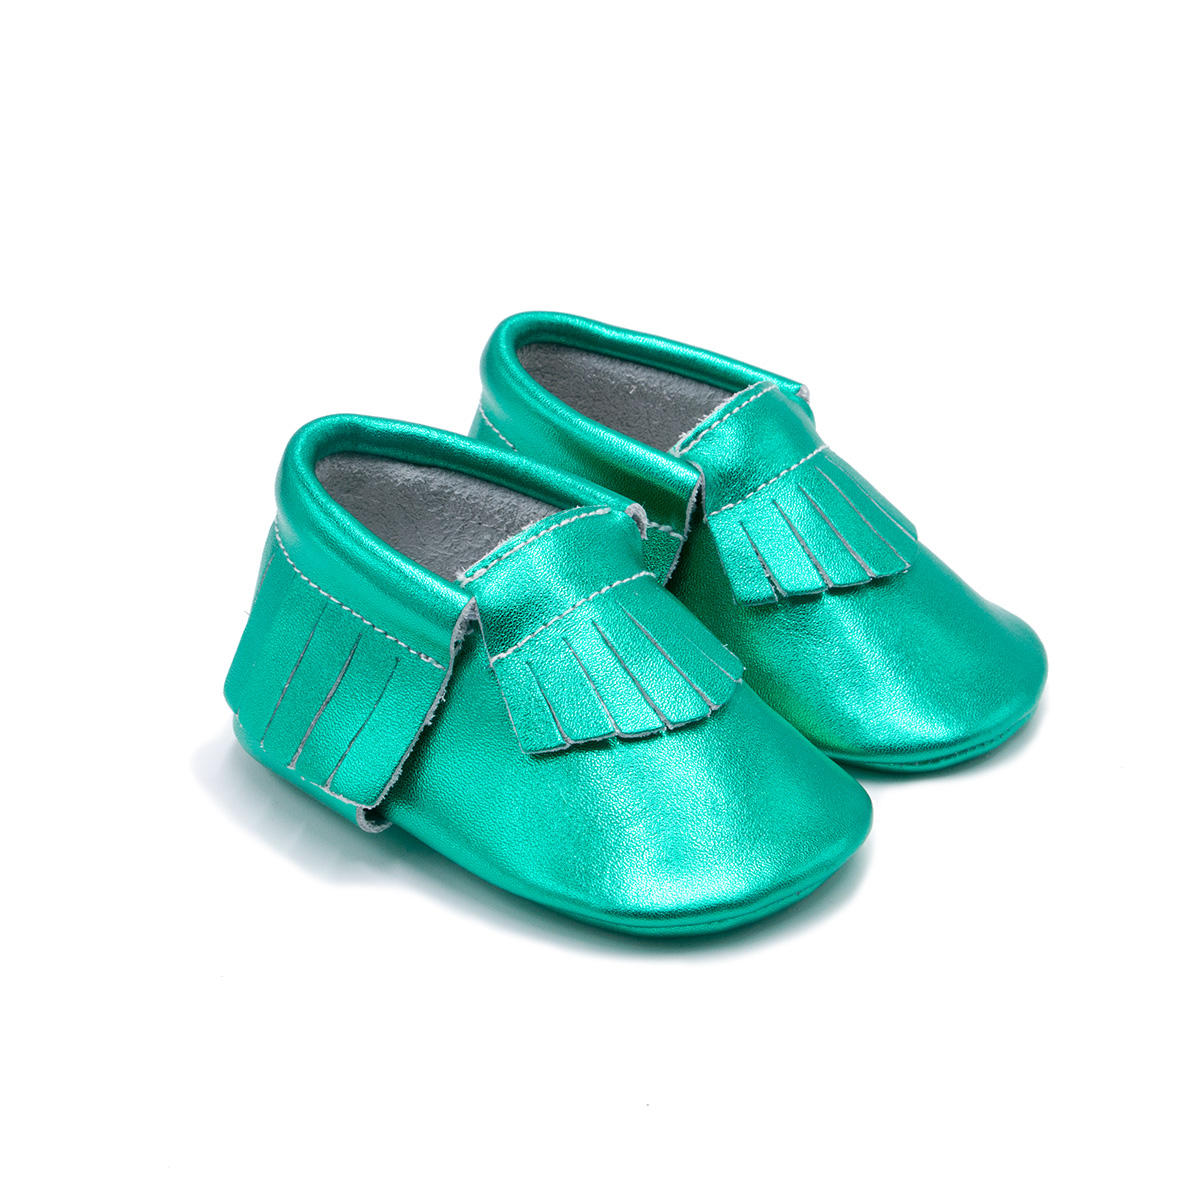 Soft Bottom Baby Shoes Fashion Tassels Bowknot Baby Moccasin Newborn Babies Shoes Genuine Leather Prewalkers Boots